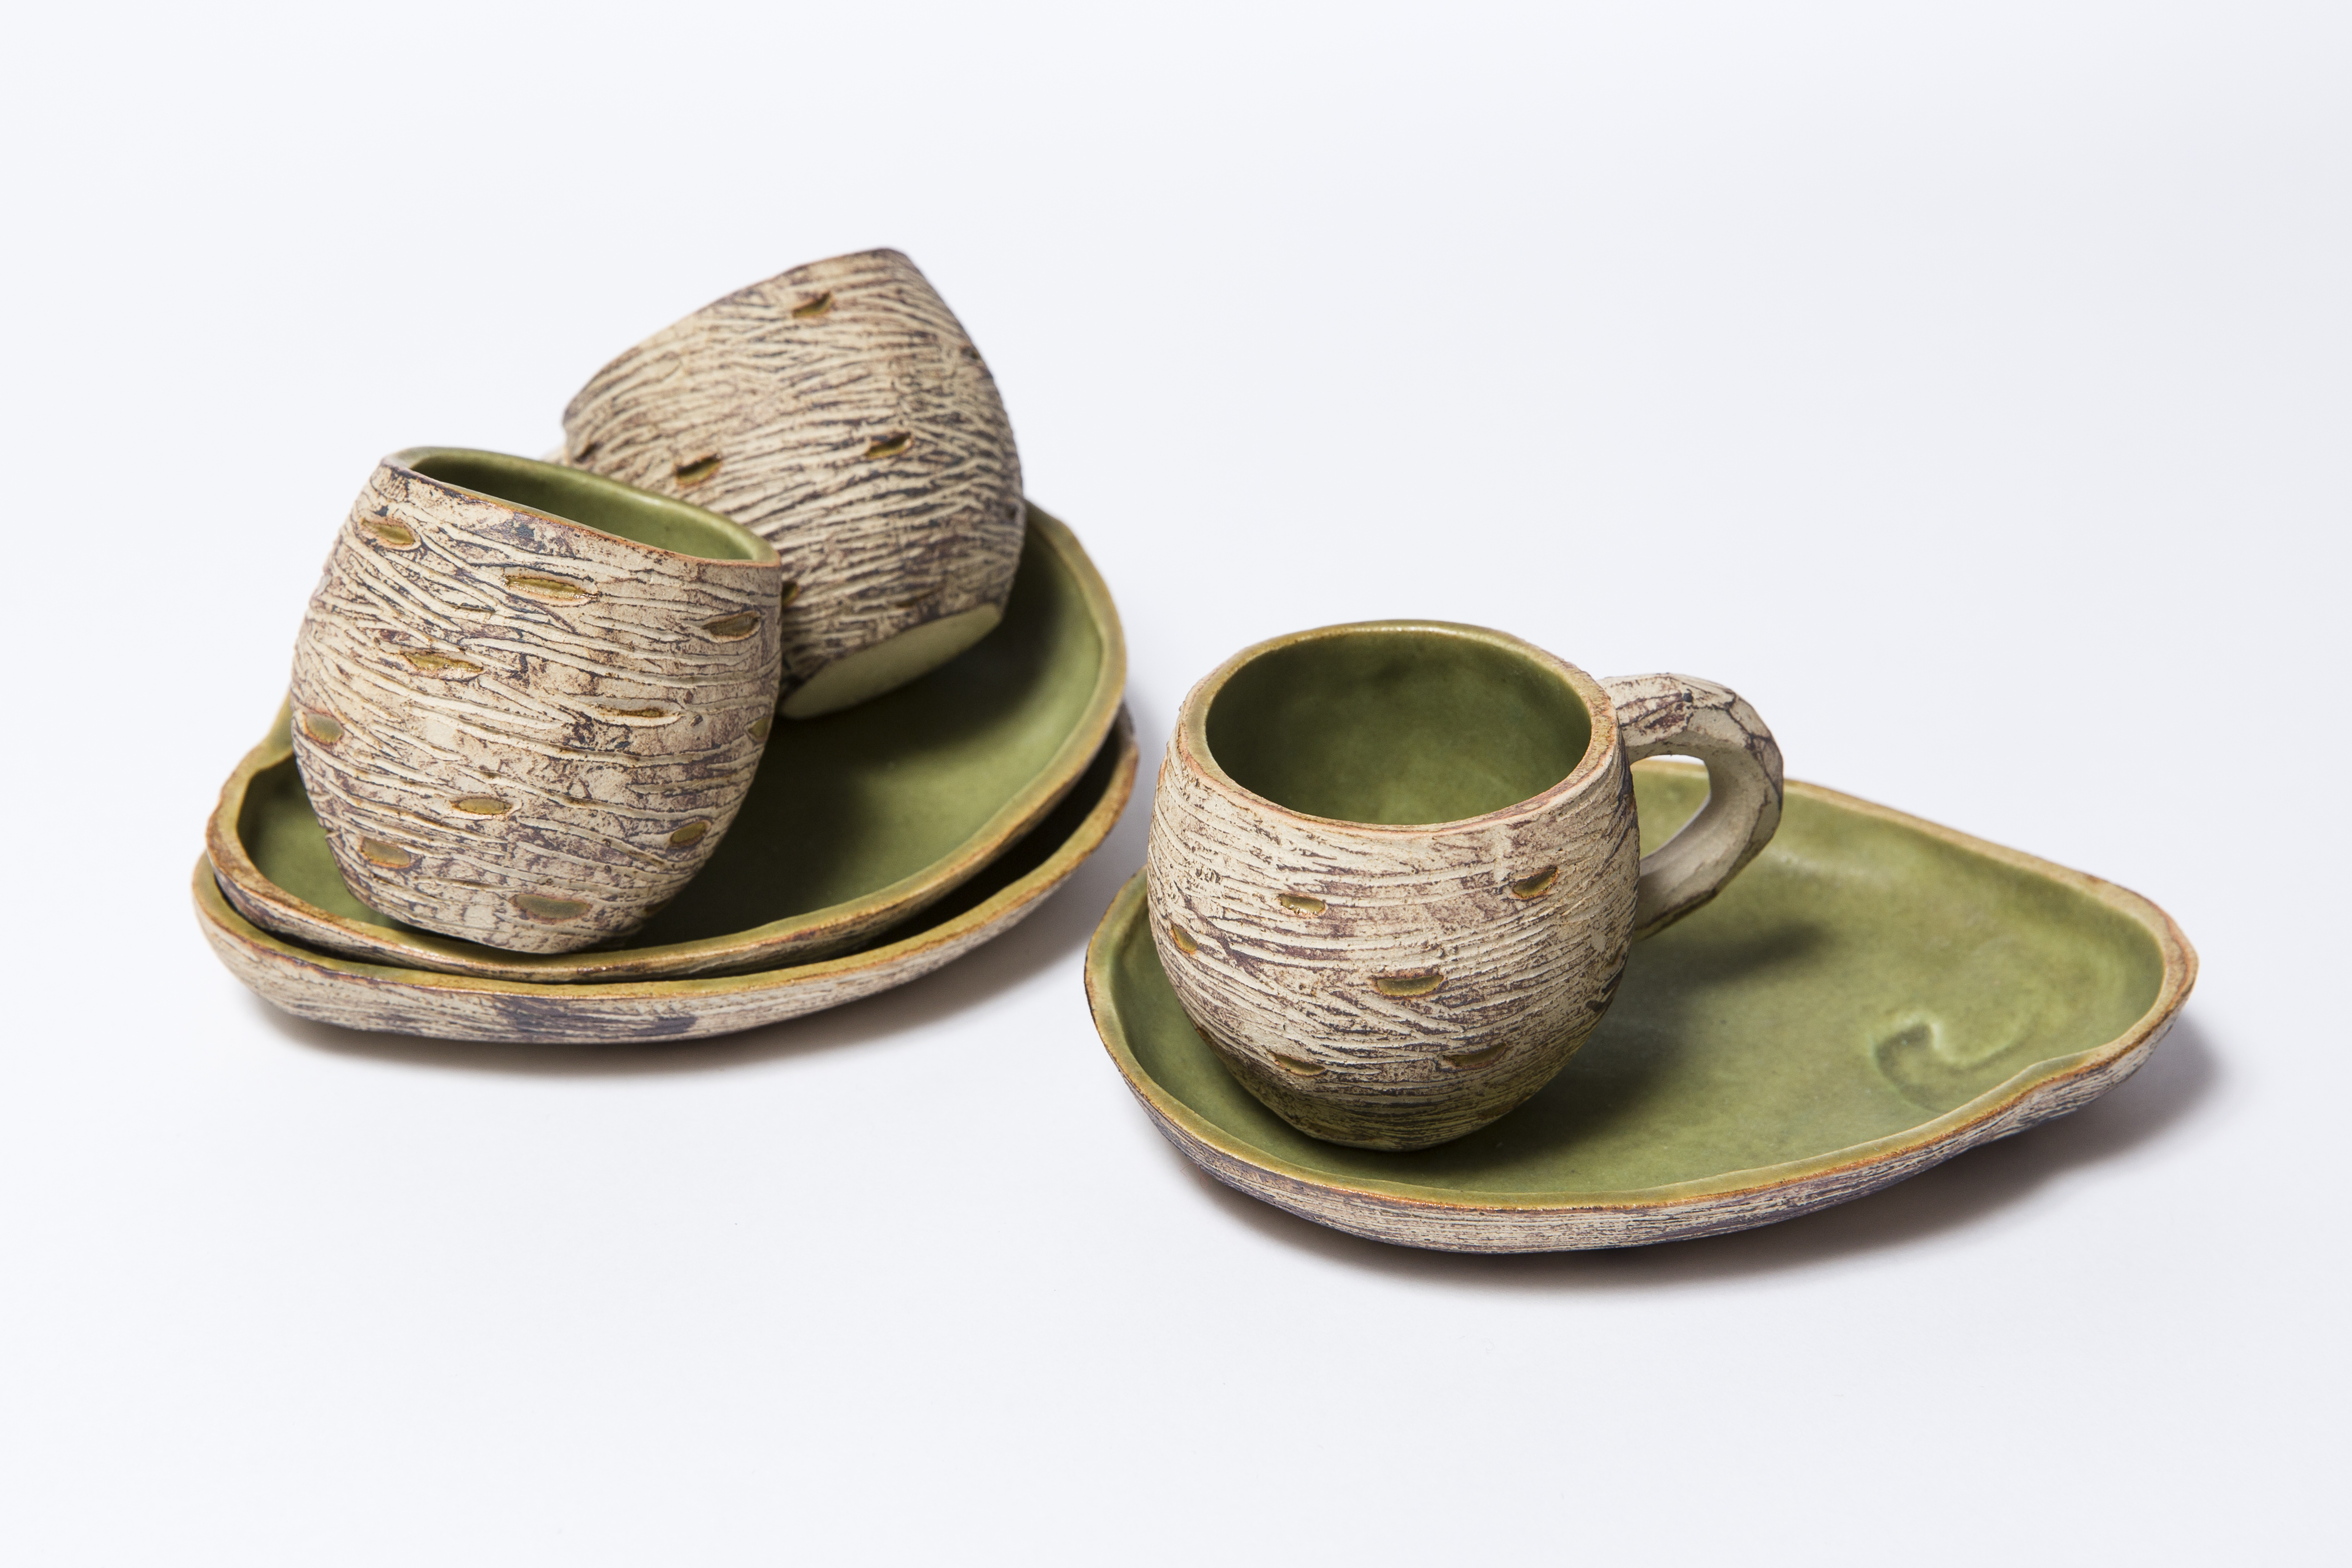 Bev Seth 1 Woodland cups and saucers